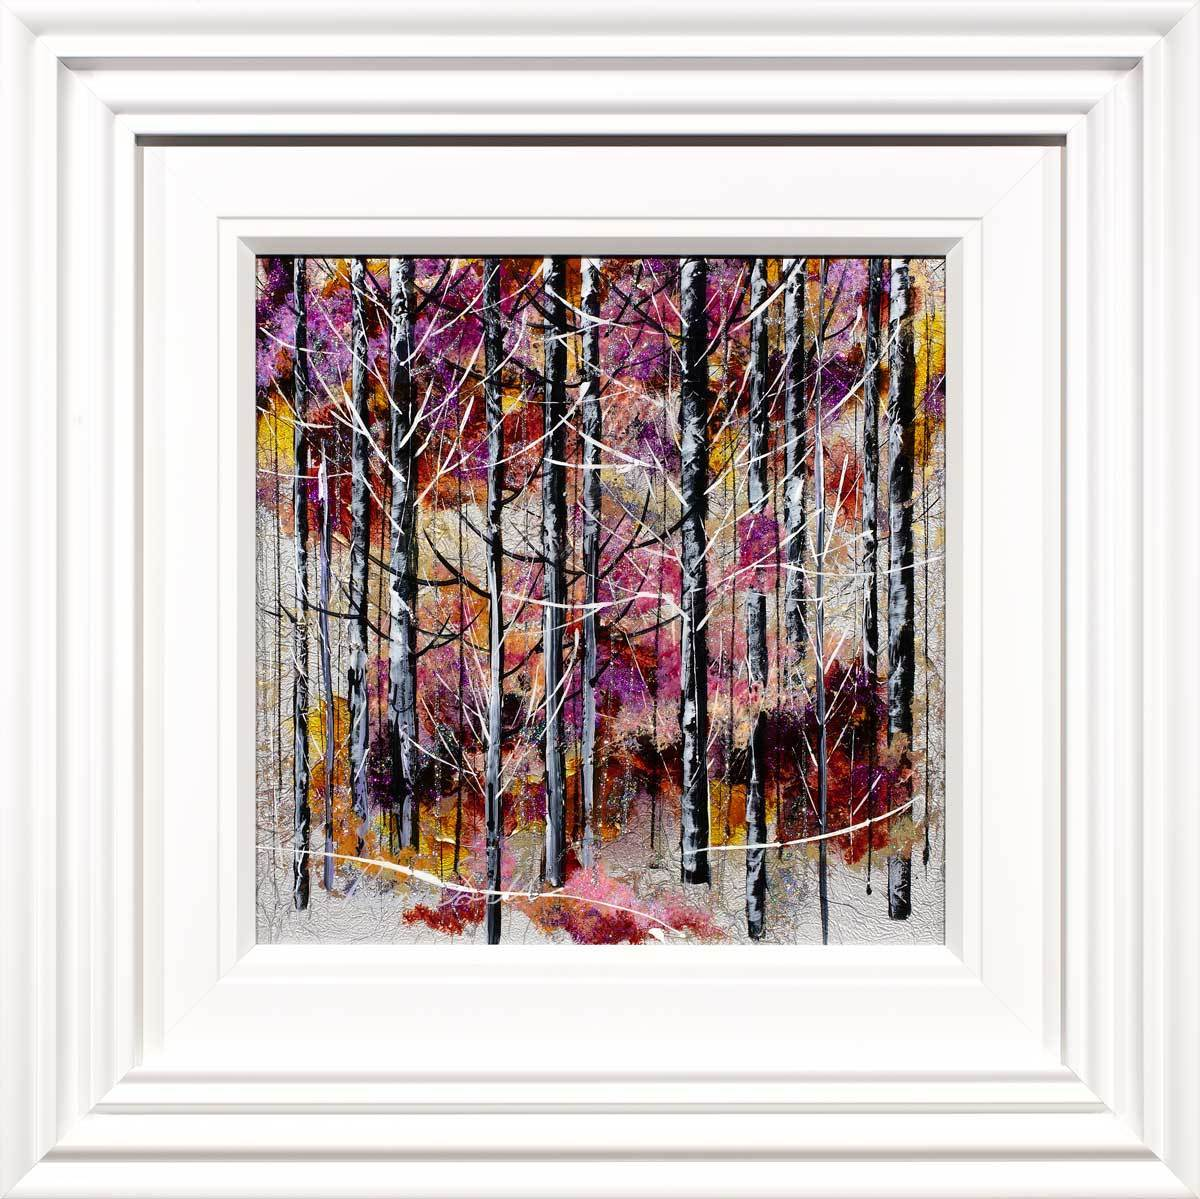 Natural Treasures - Original Rozanne Bell Framed